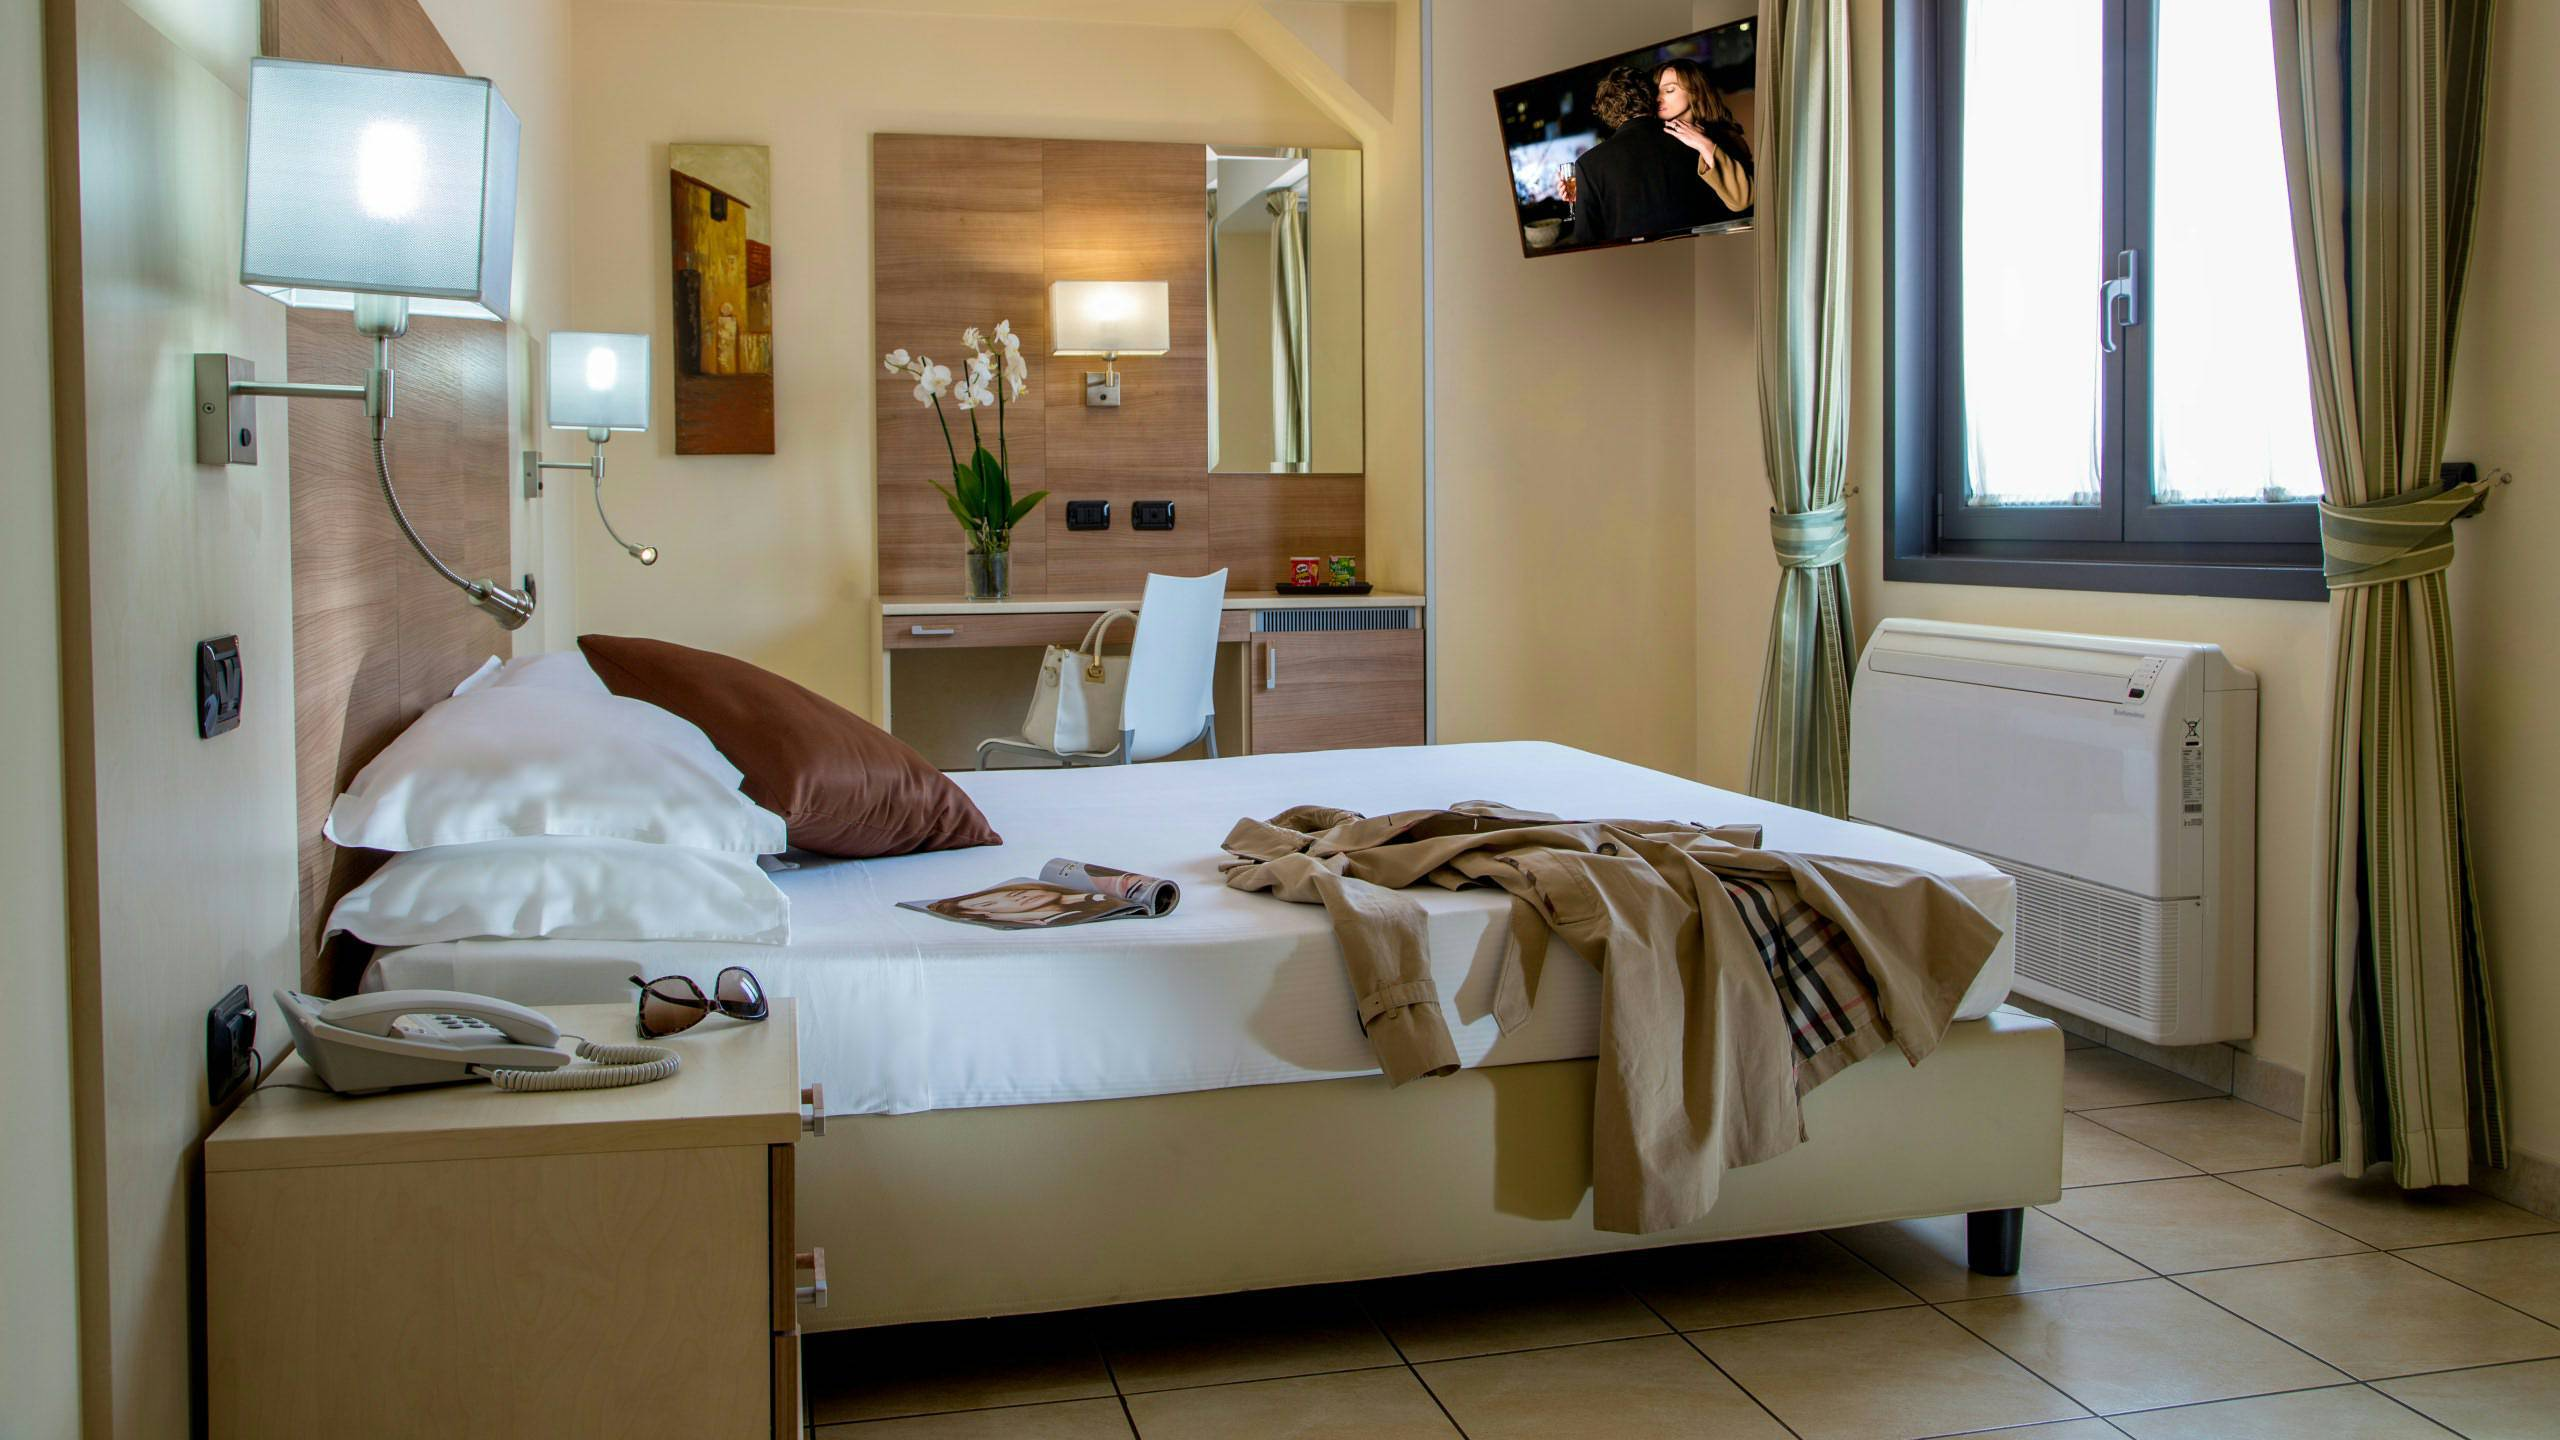 Domidea-Business-Hotel-Rome-rooms-04